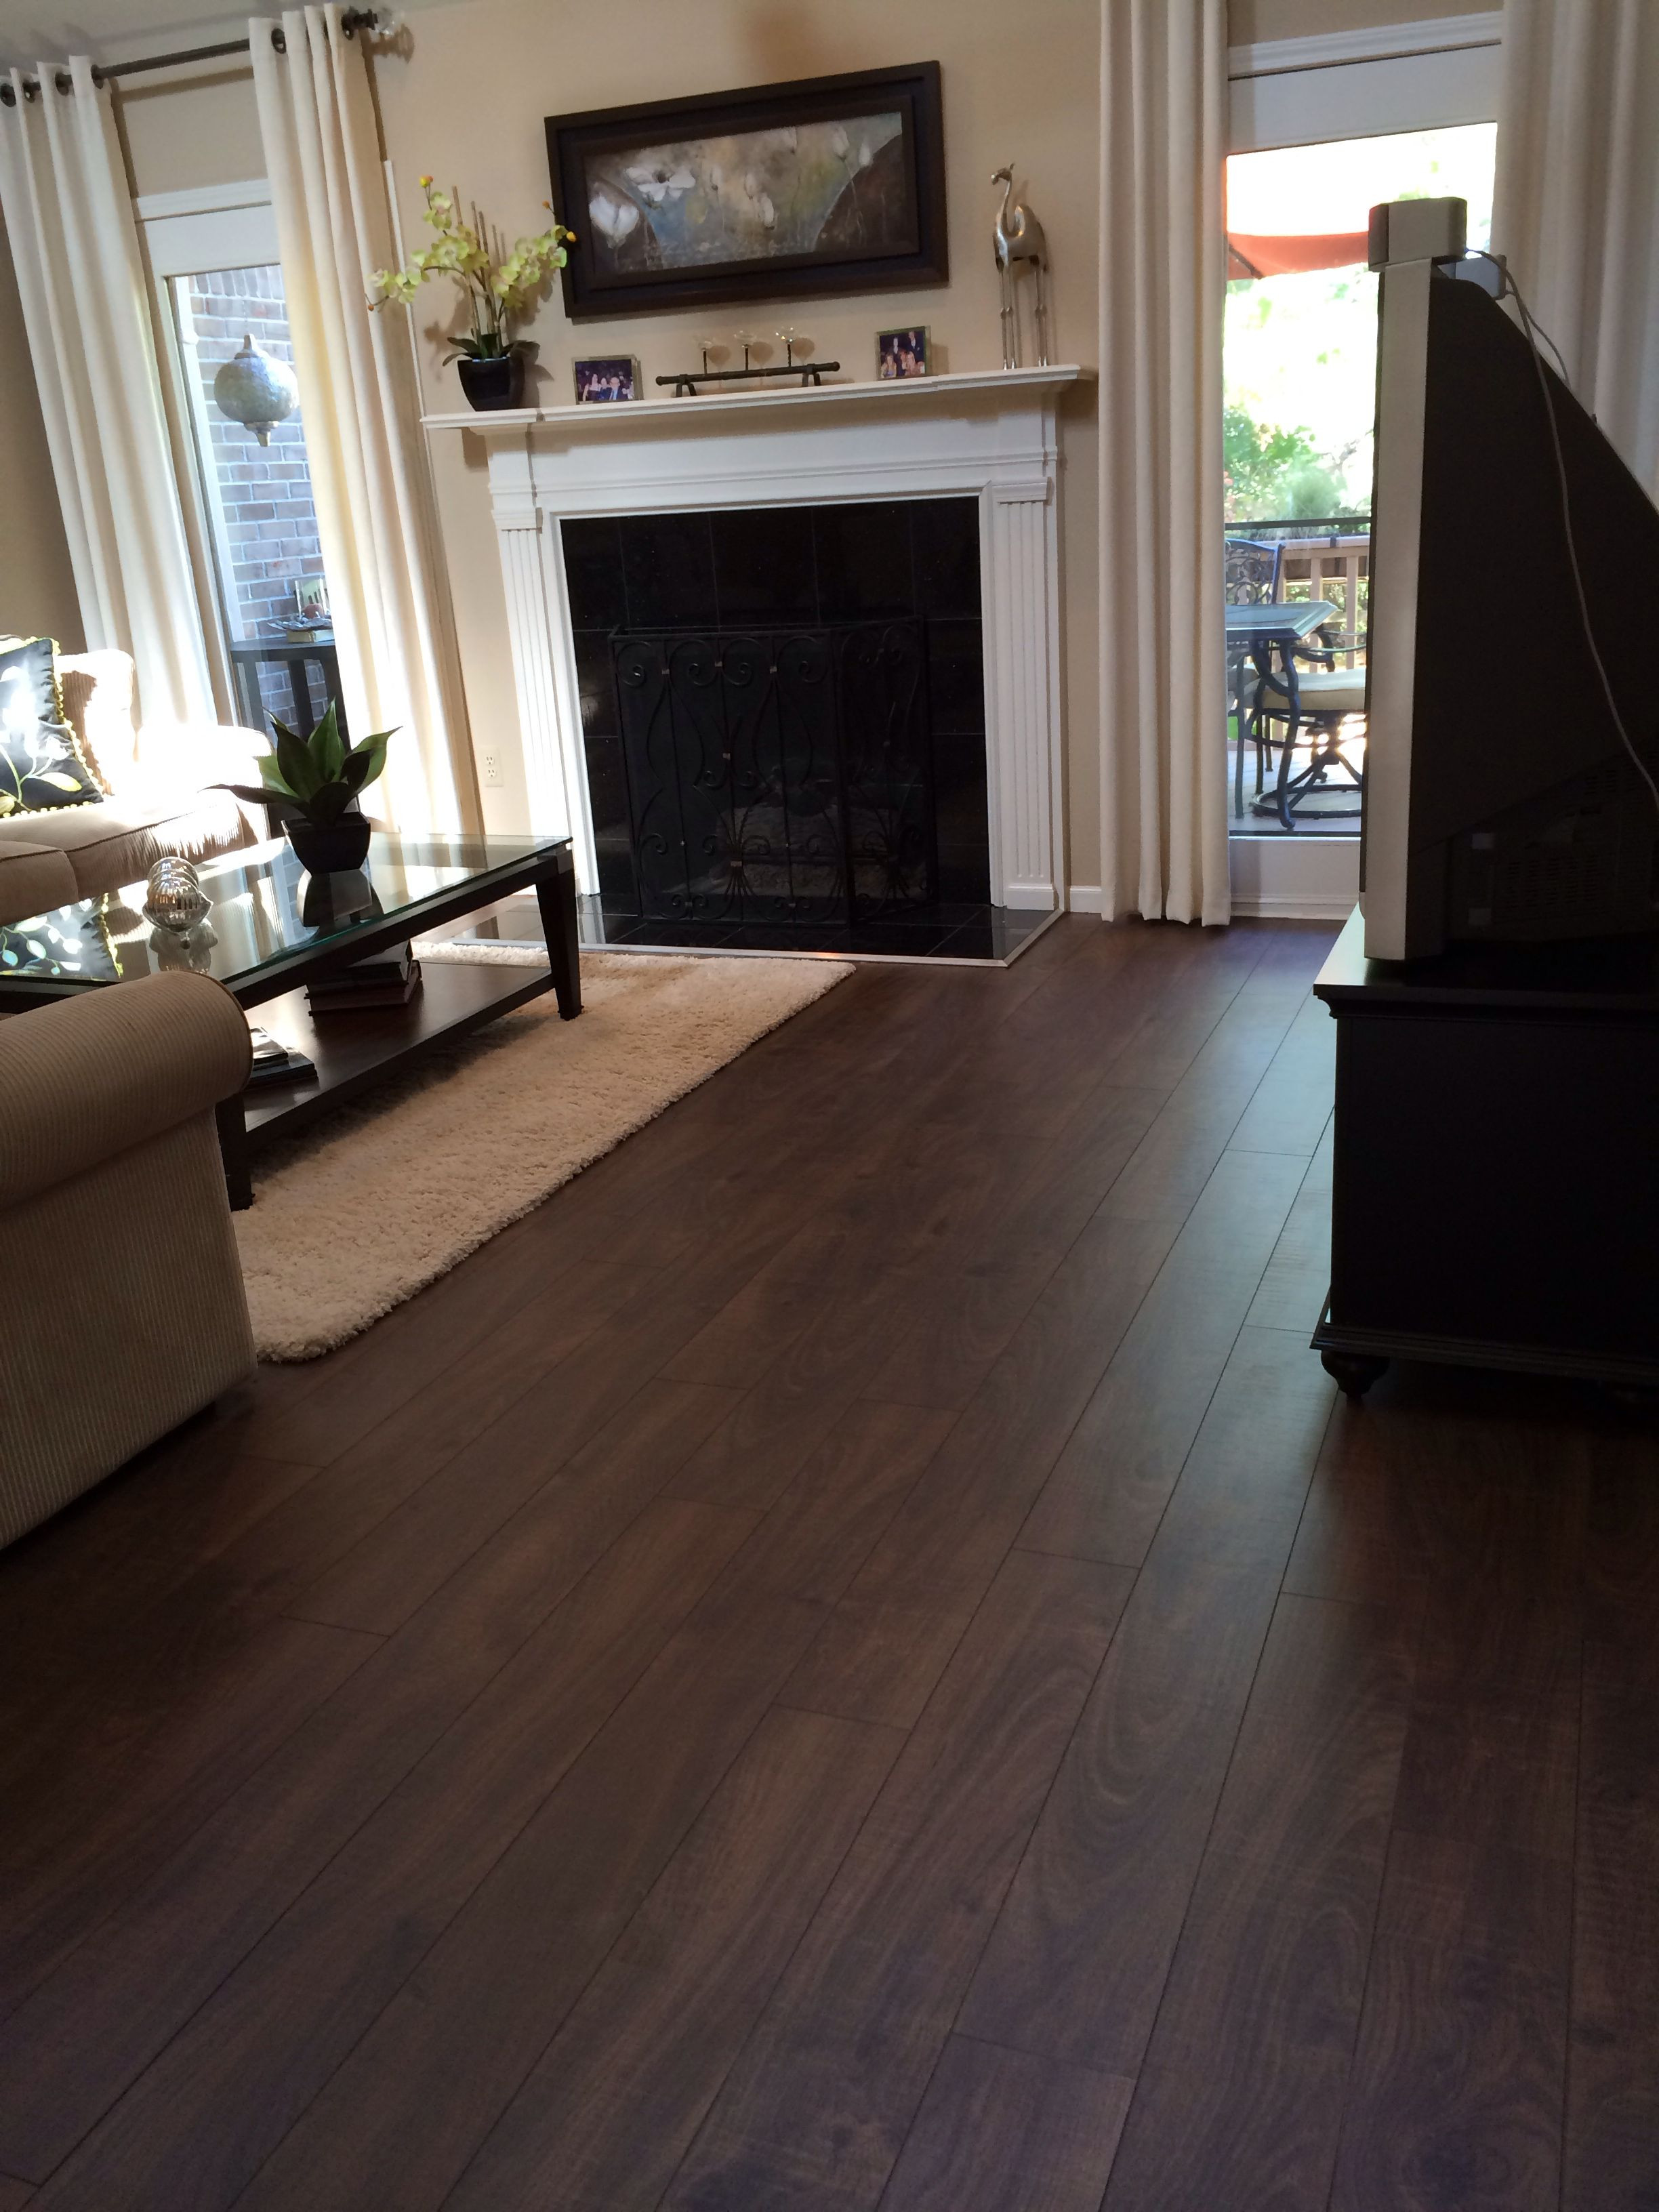 hardwood flooring scraps of pin by liliana legarreta on floors and stairs pinterest home throughout dark laminate kitchen flooring best of dark laminate kitchen flooring we are inspired by laminate floor ideas for more inspiration visit